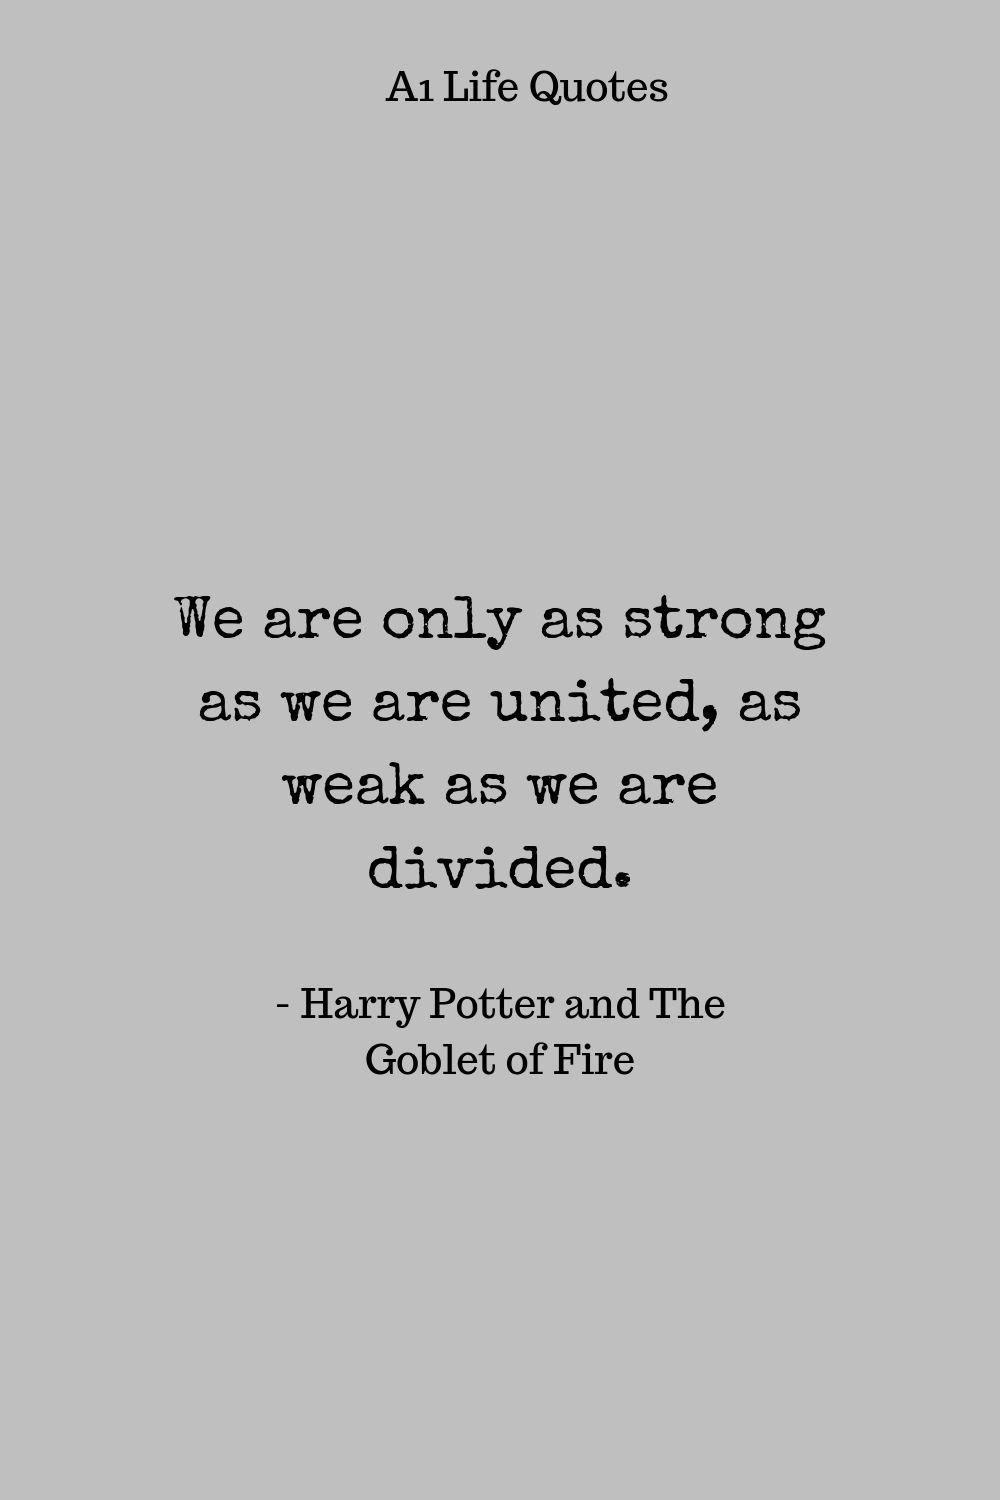 harry potter quotes tumblr